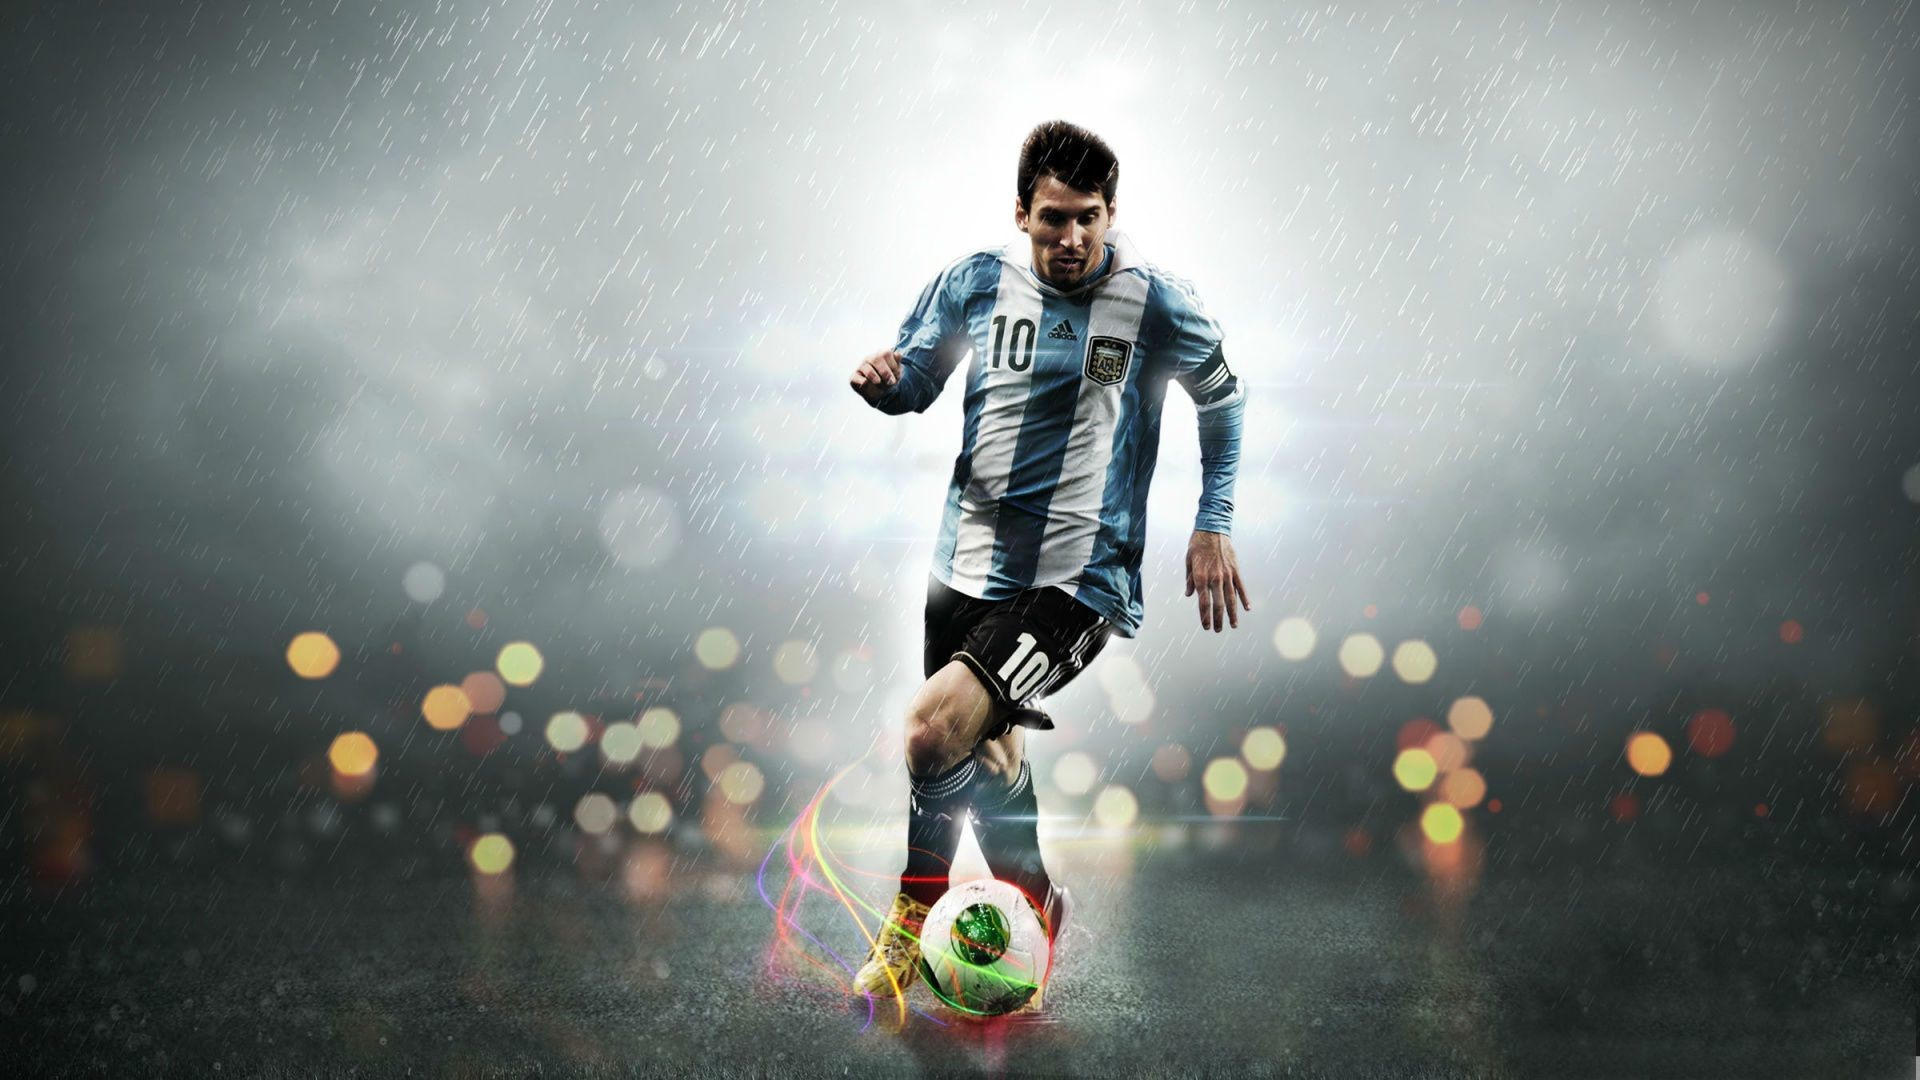 Res: 1920x1080, Wallpaper Of Soccer Players